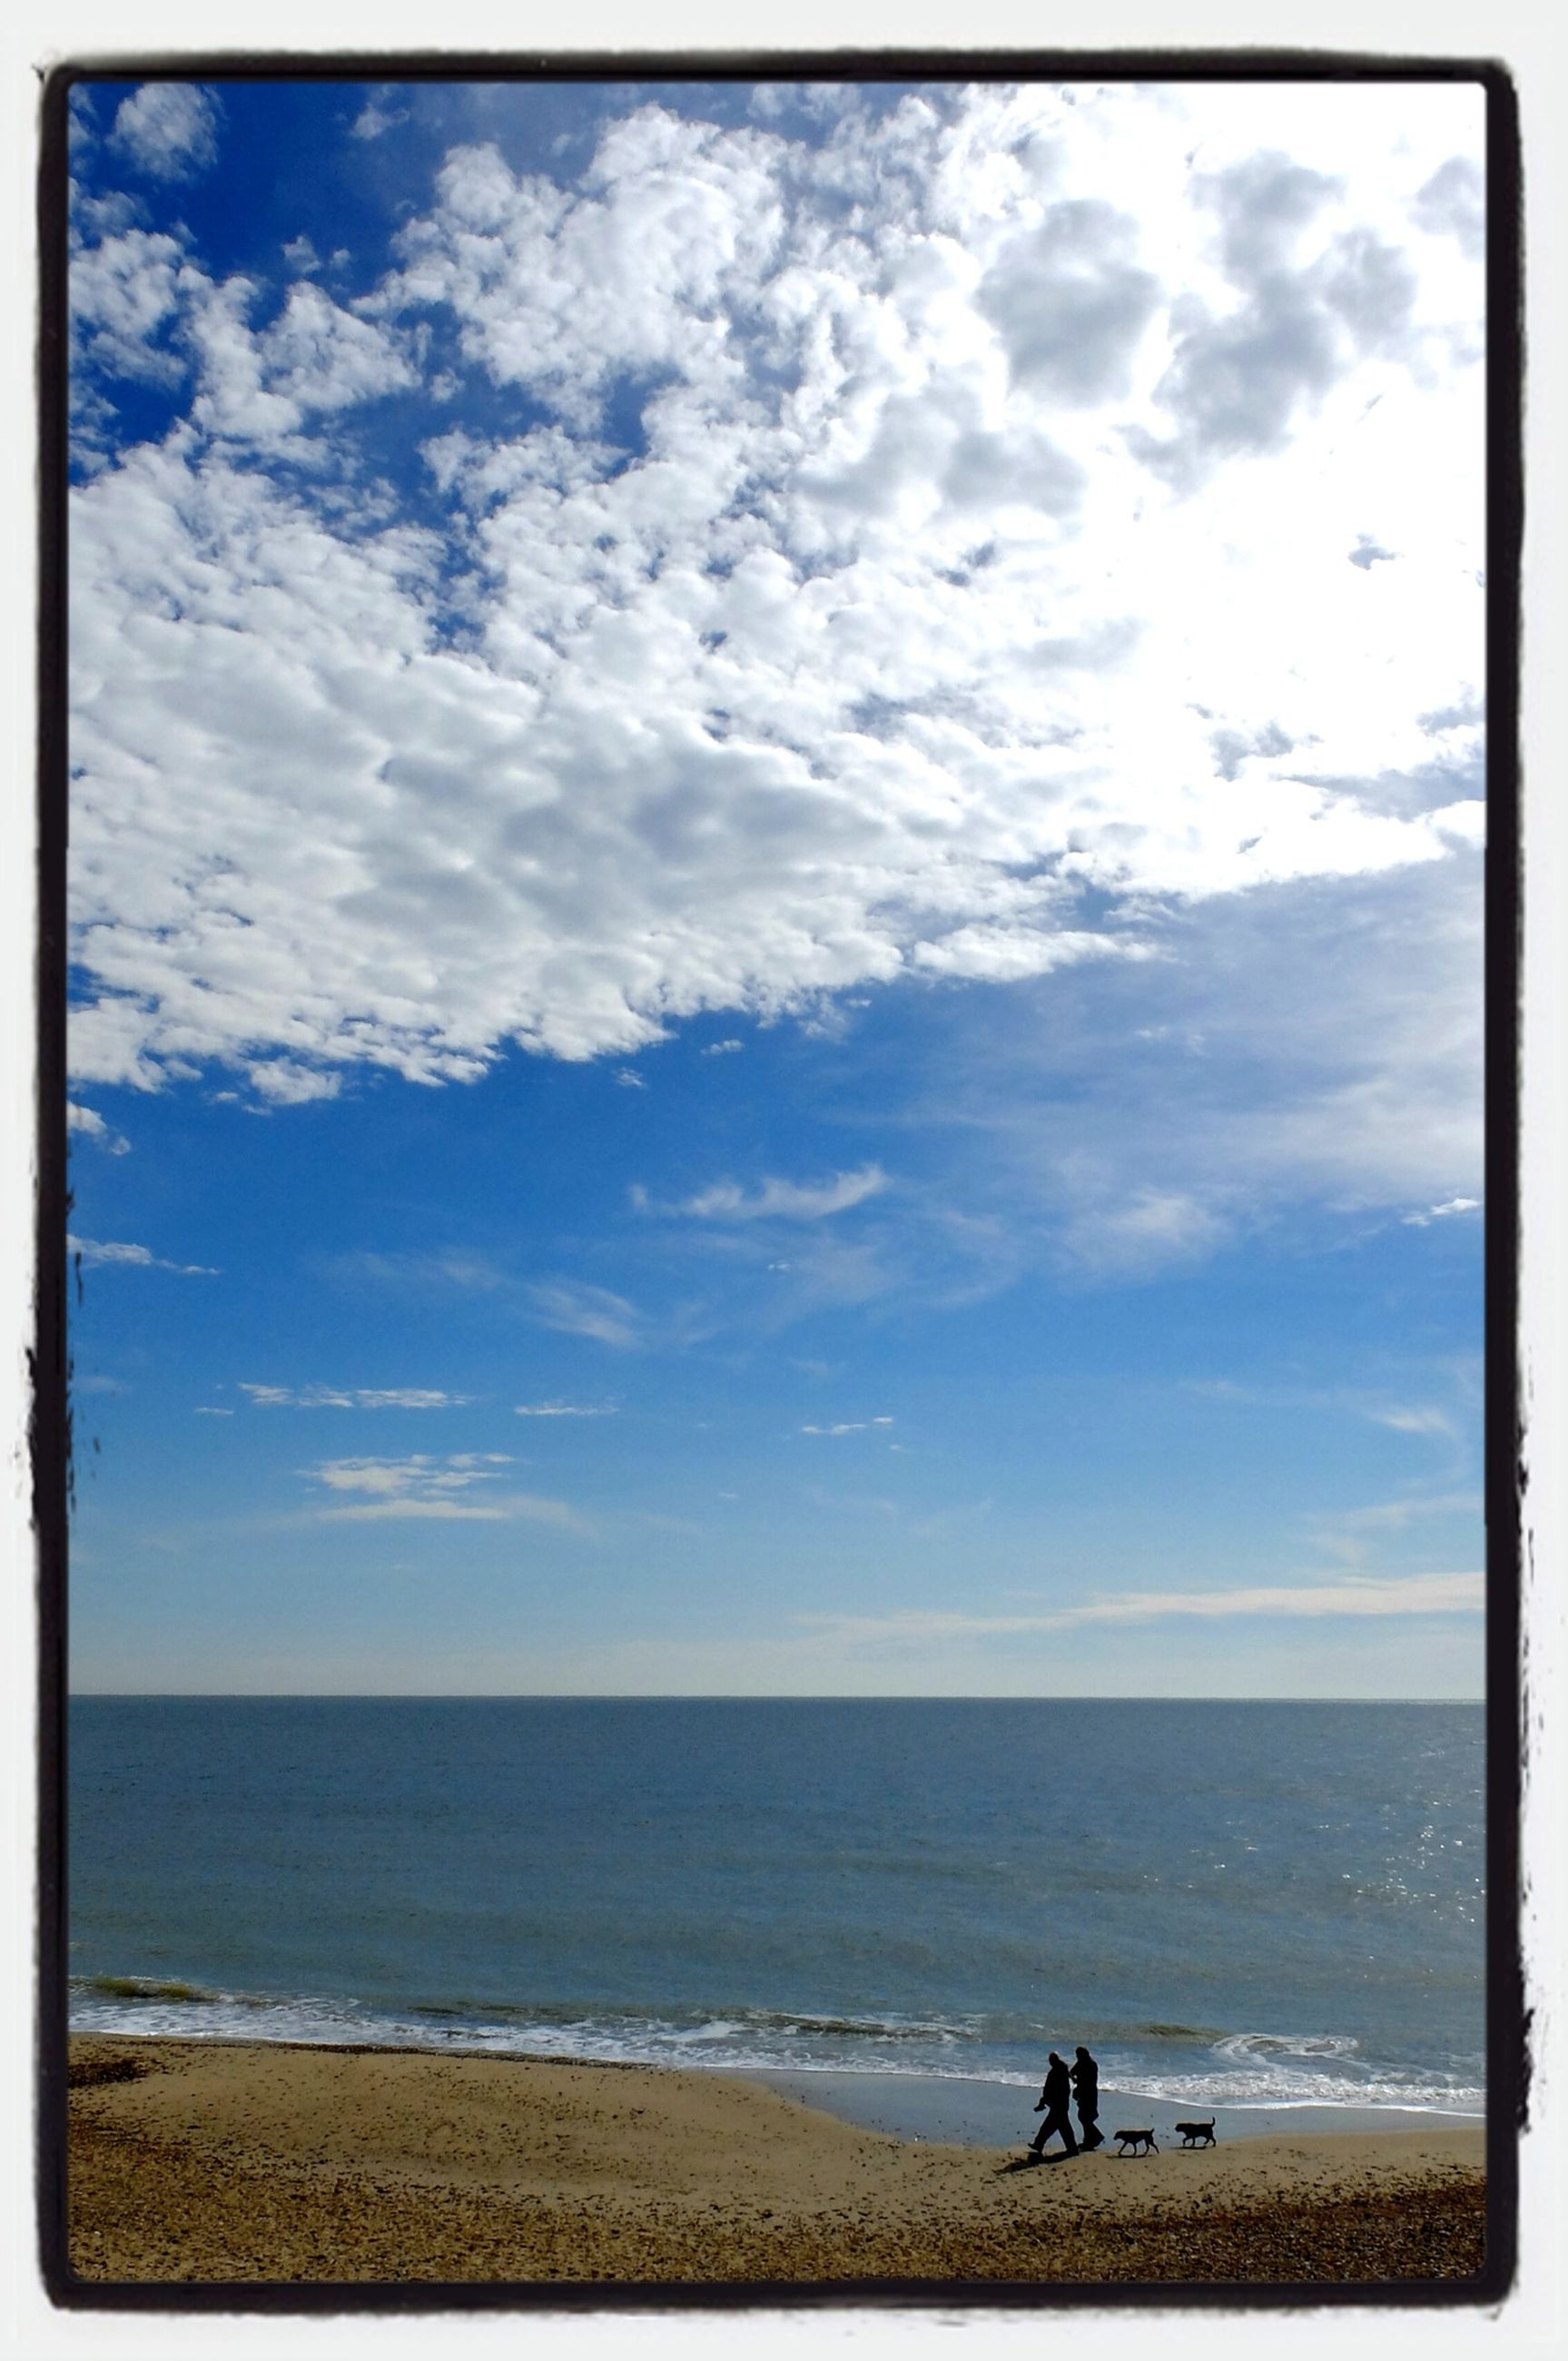 sea, beach, horizon over water, water, sky, shore, scenics, sand, cloud - sky, tranquil scene, beauty in nature, tranquility, transfer print, nature, leisure activity, cloud, cloudy, lifestyles, vacations